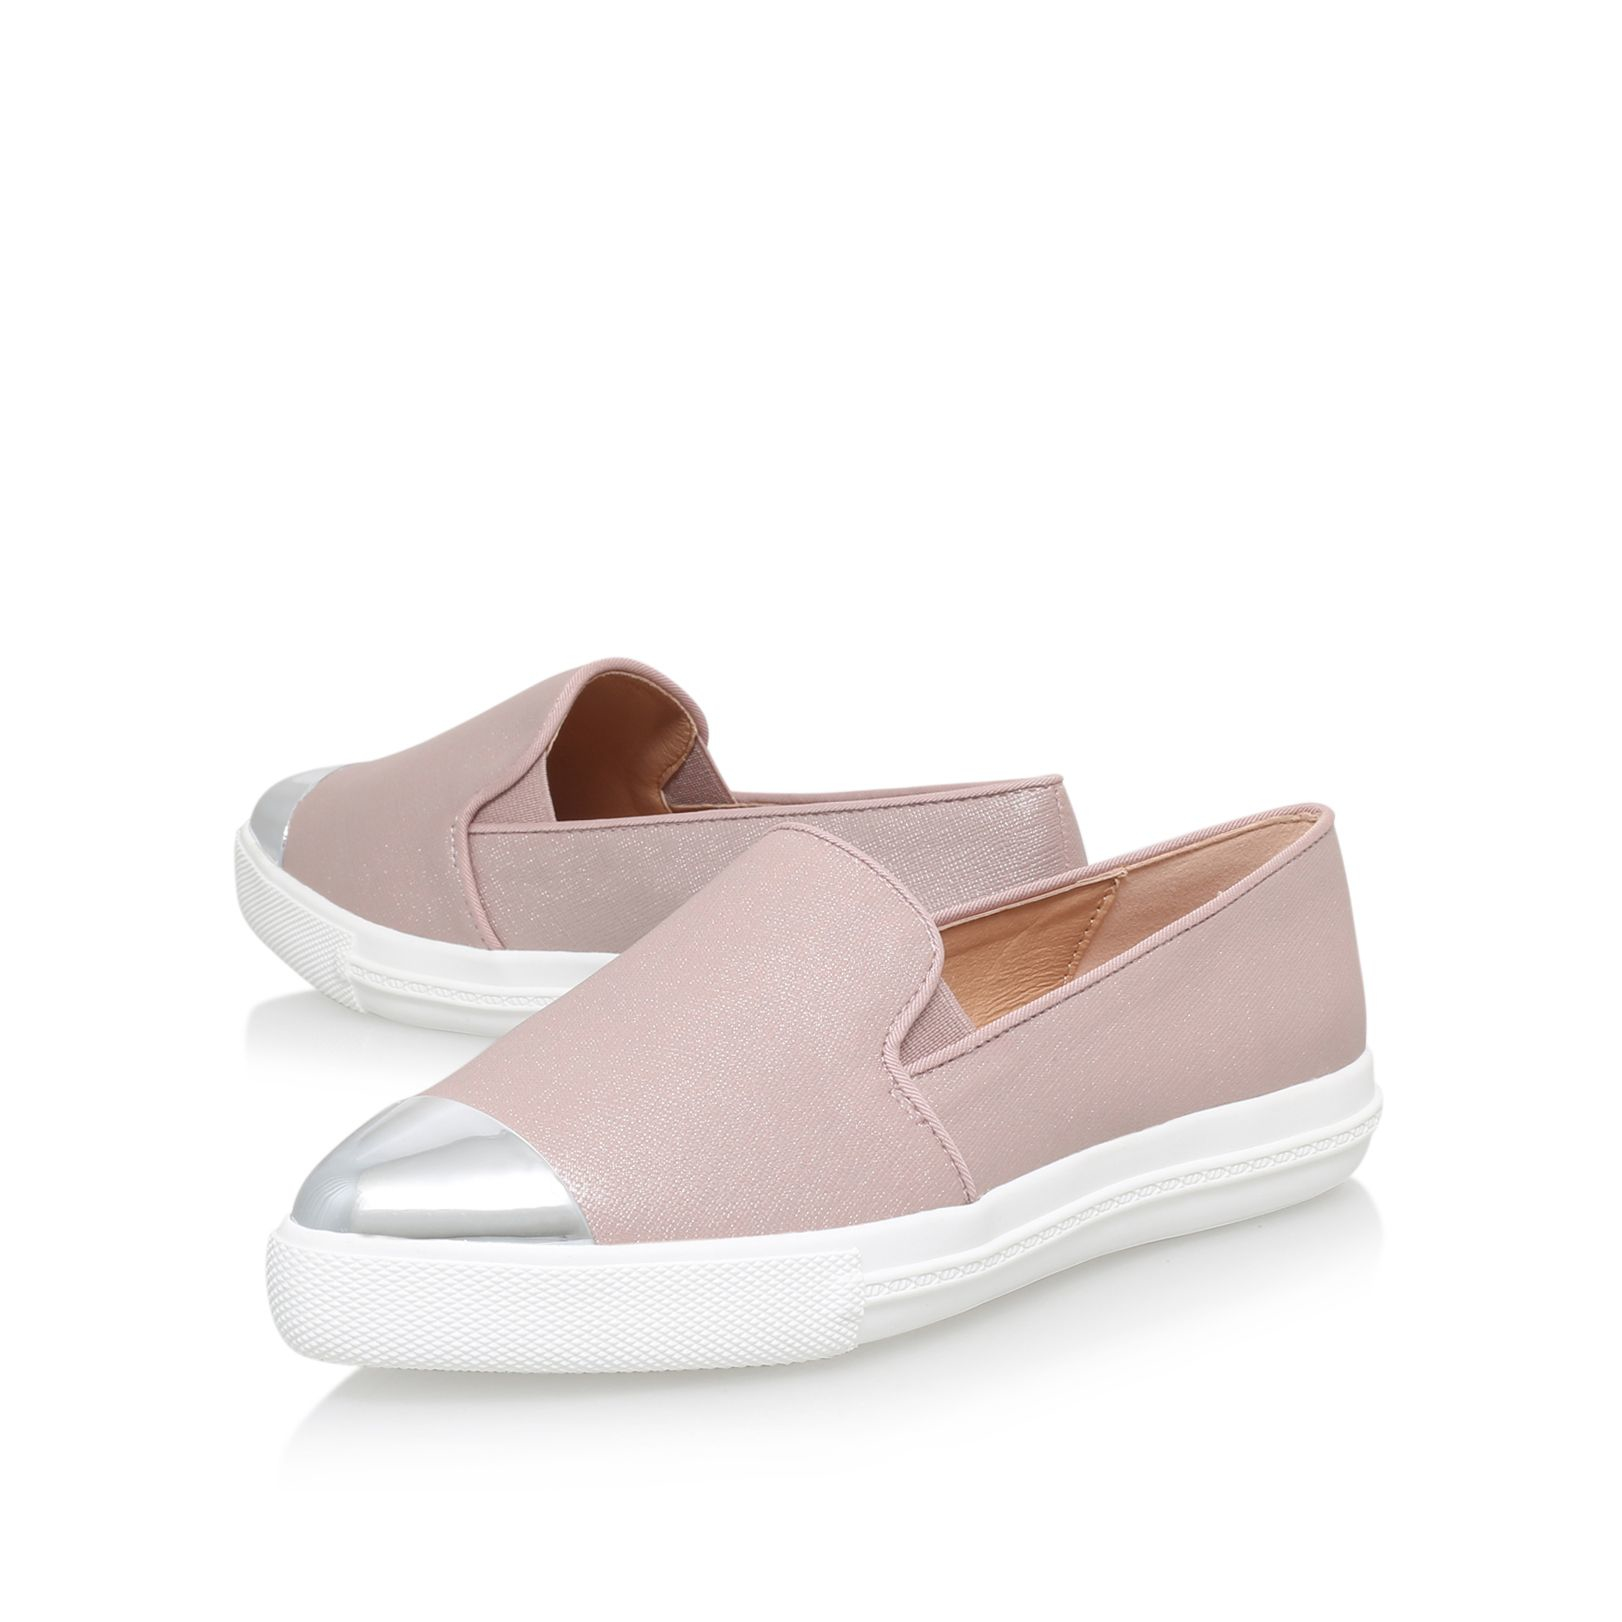 Miss Kg Synthetic Lanette Flat Slip On Sneakers in Pink